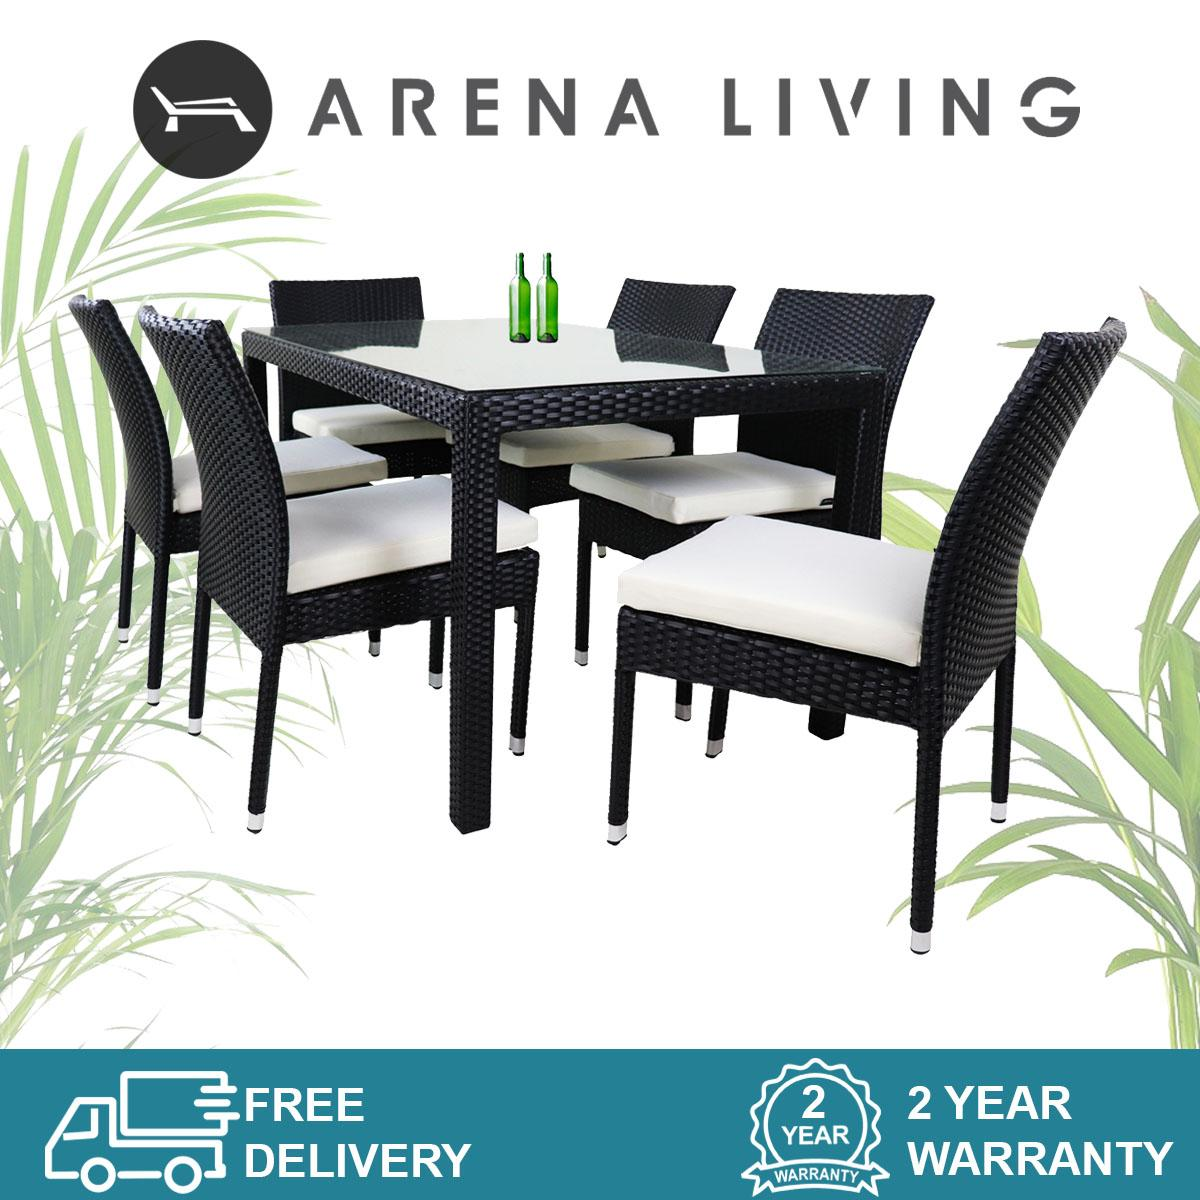 Casa 6 Chair Dining Set Set by Arena Living - 2 Year Warranty Outdoor Furniture